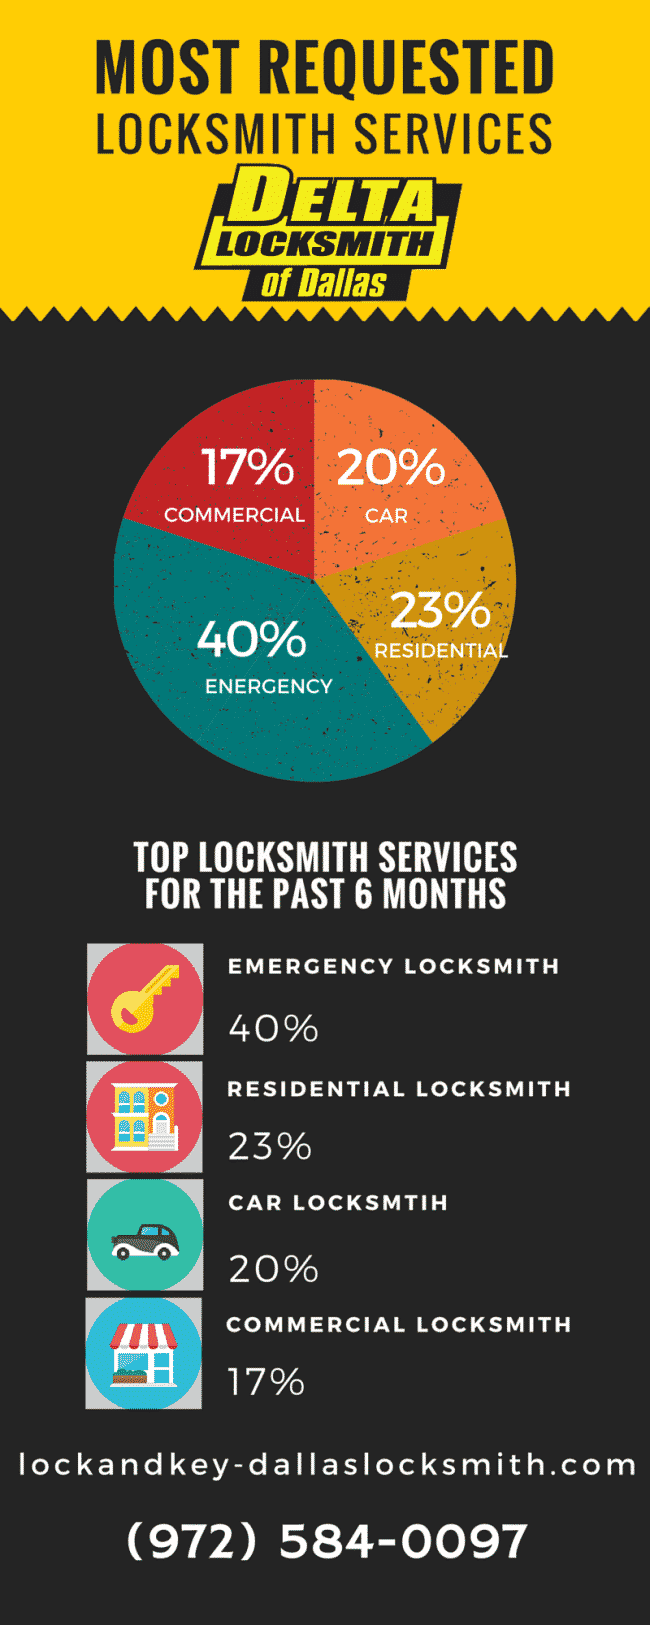 Most requested locksmith services in Dallas and Fort Worth